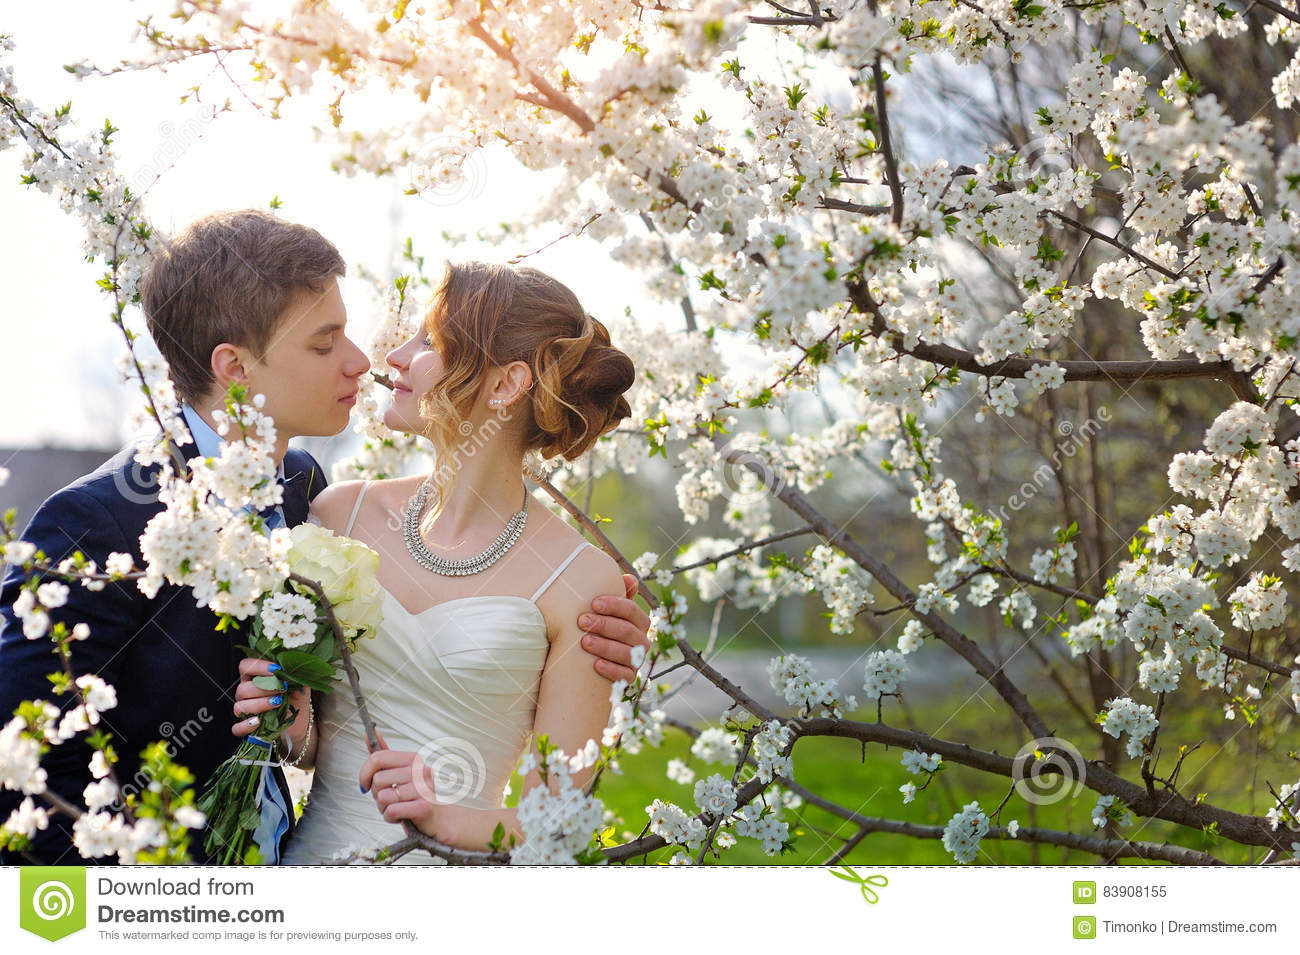 Wedding kiss stock photos download 32171 images bride and groom at the wedding kiss in spring walk park royalty free stock photo junglespirit Images